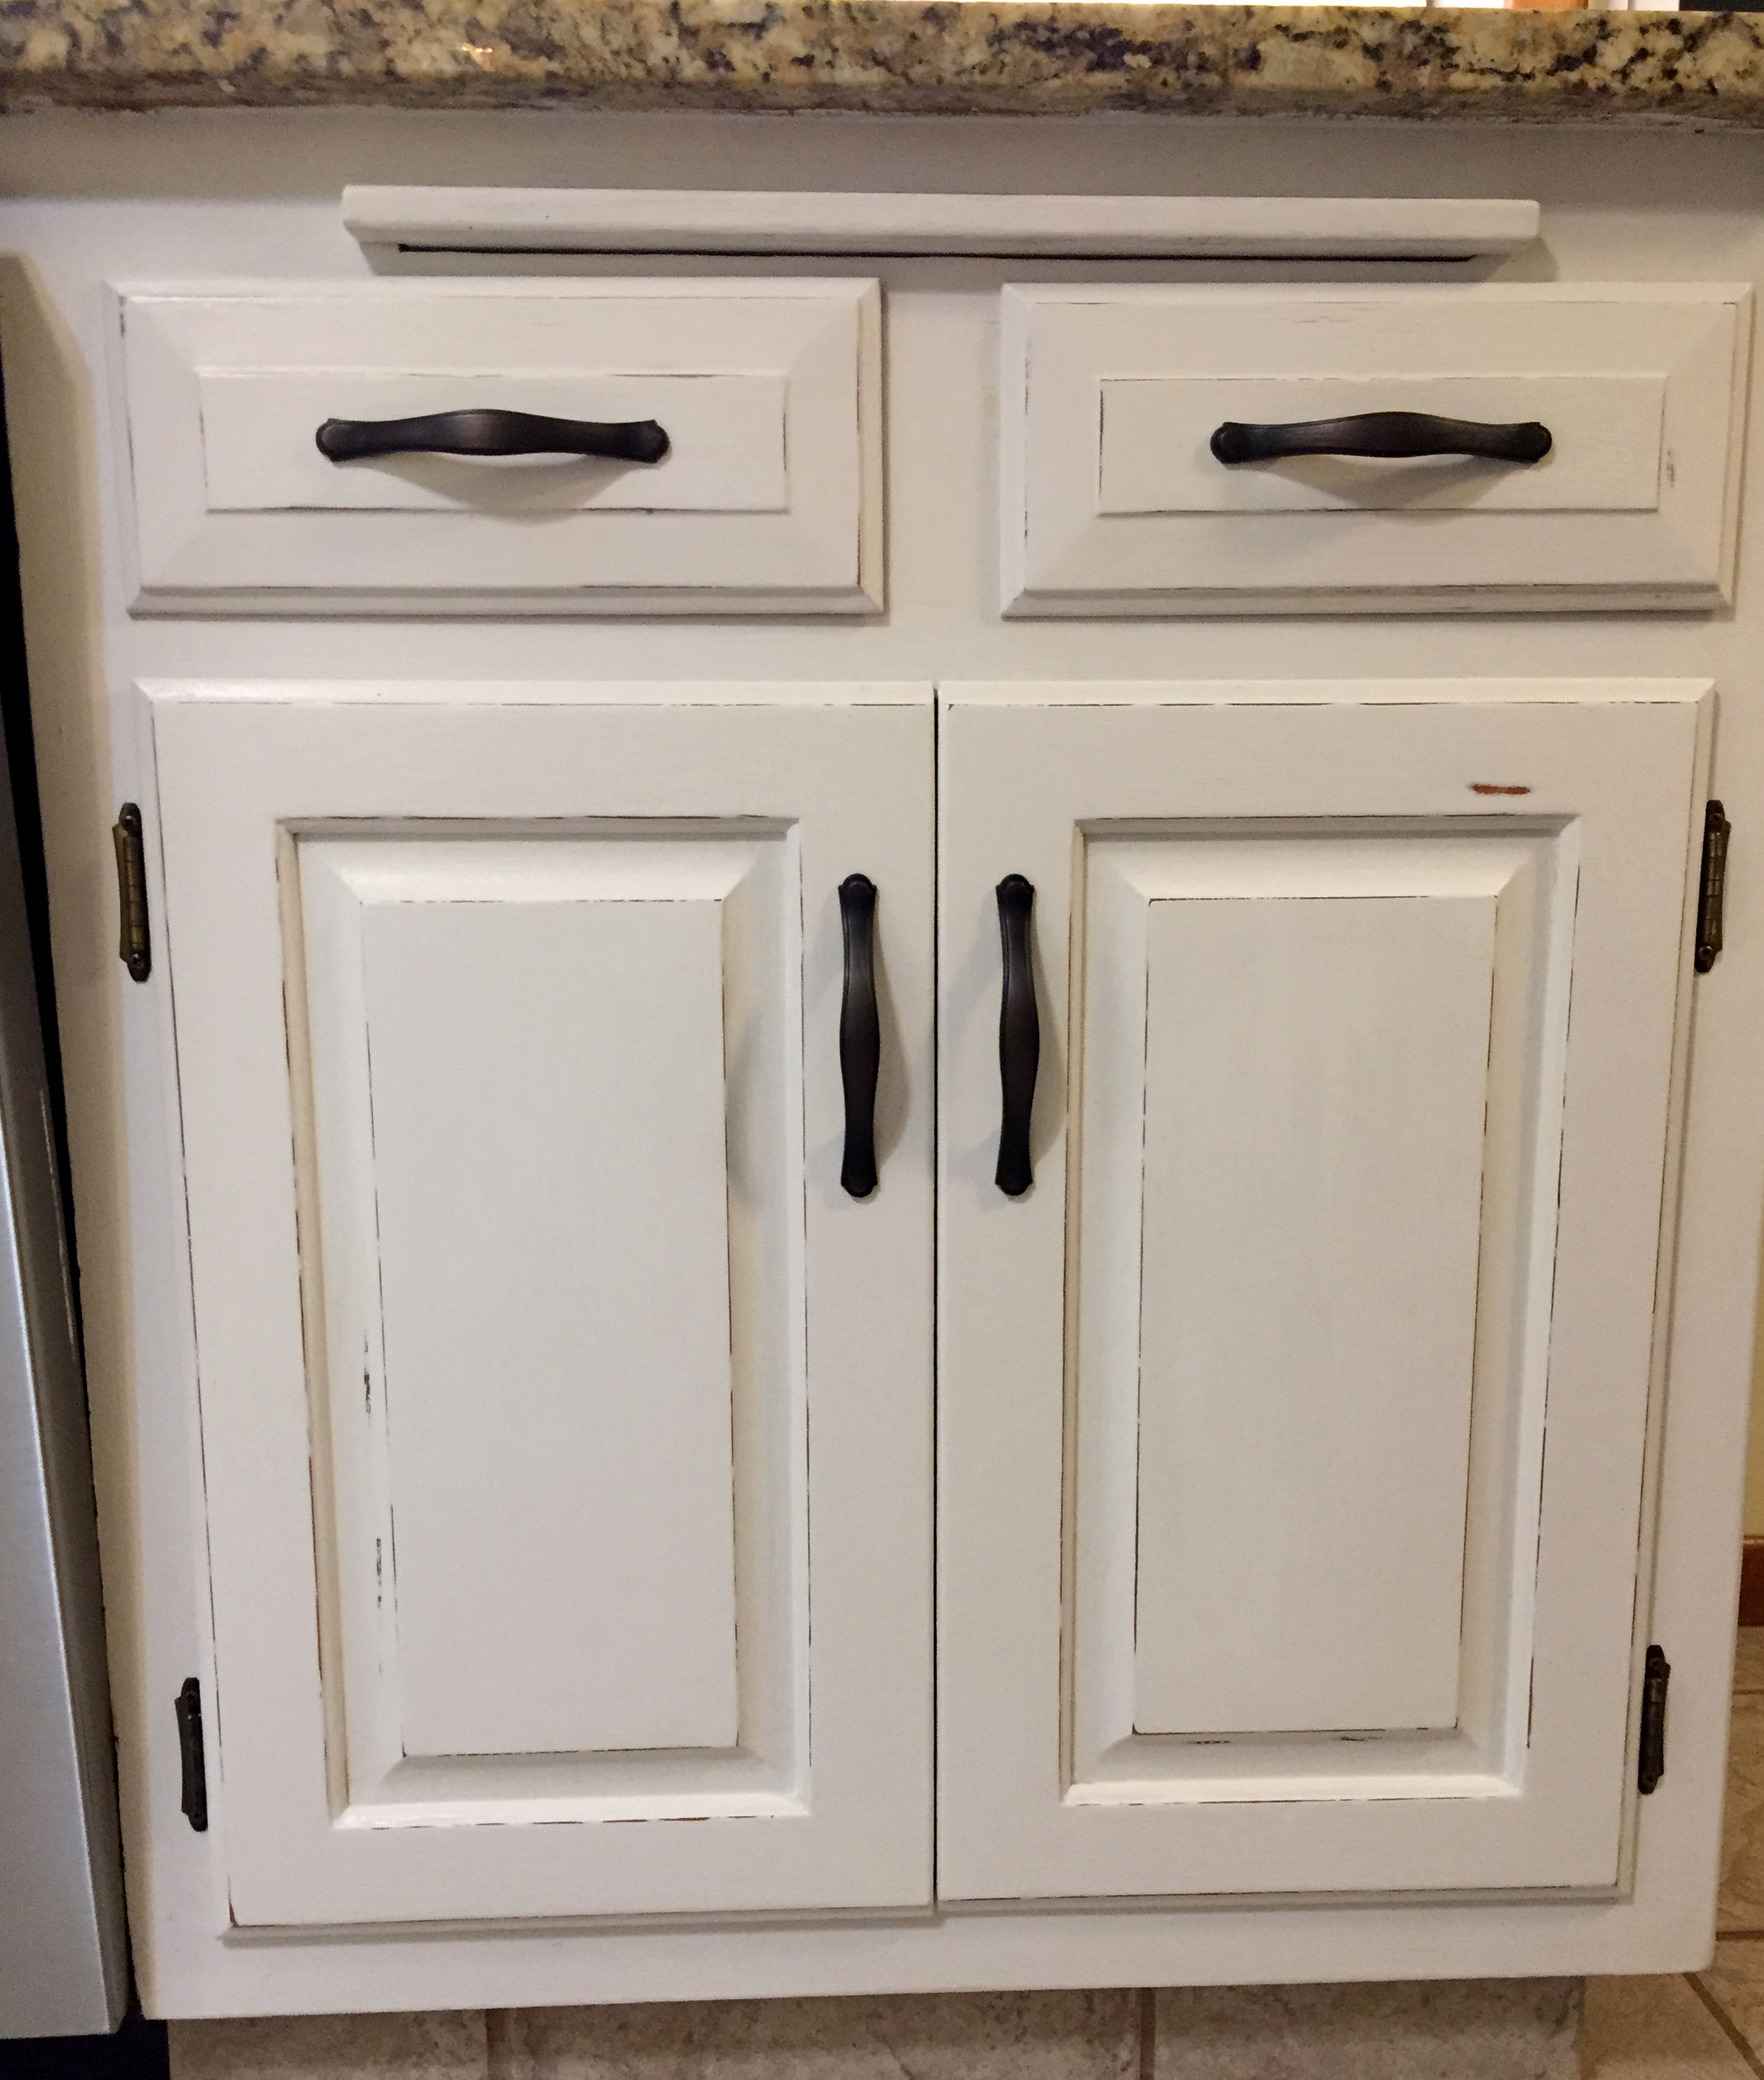 Painting Kitchen Cabinets With Chalk Paint - The Kelly Homestead